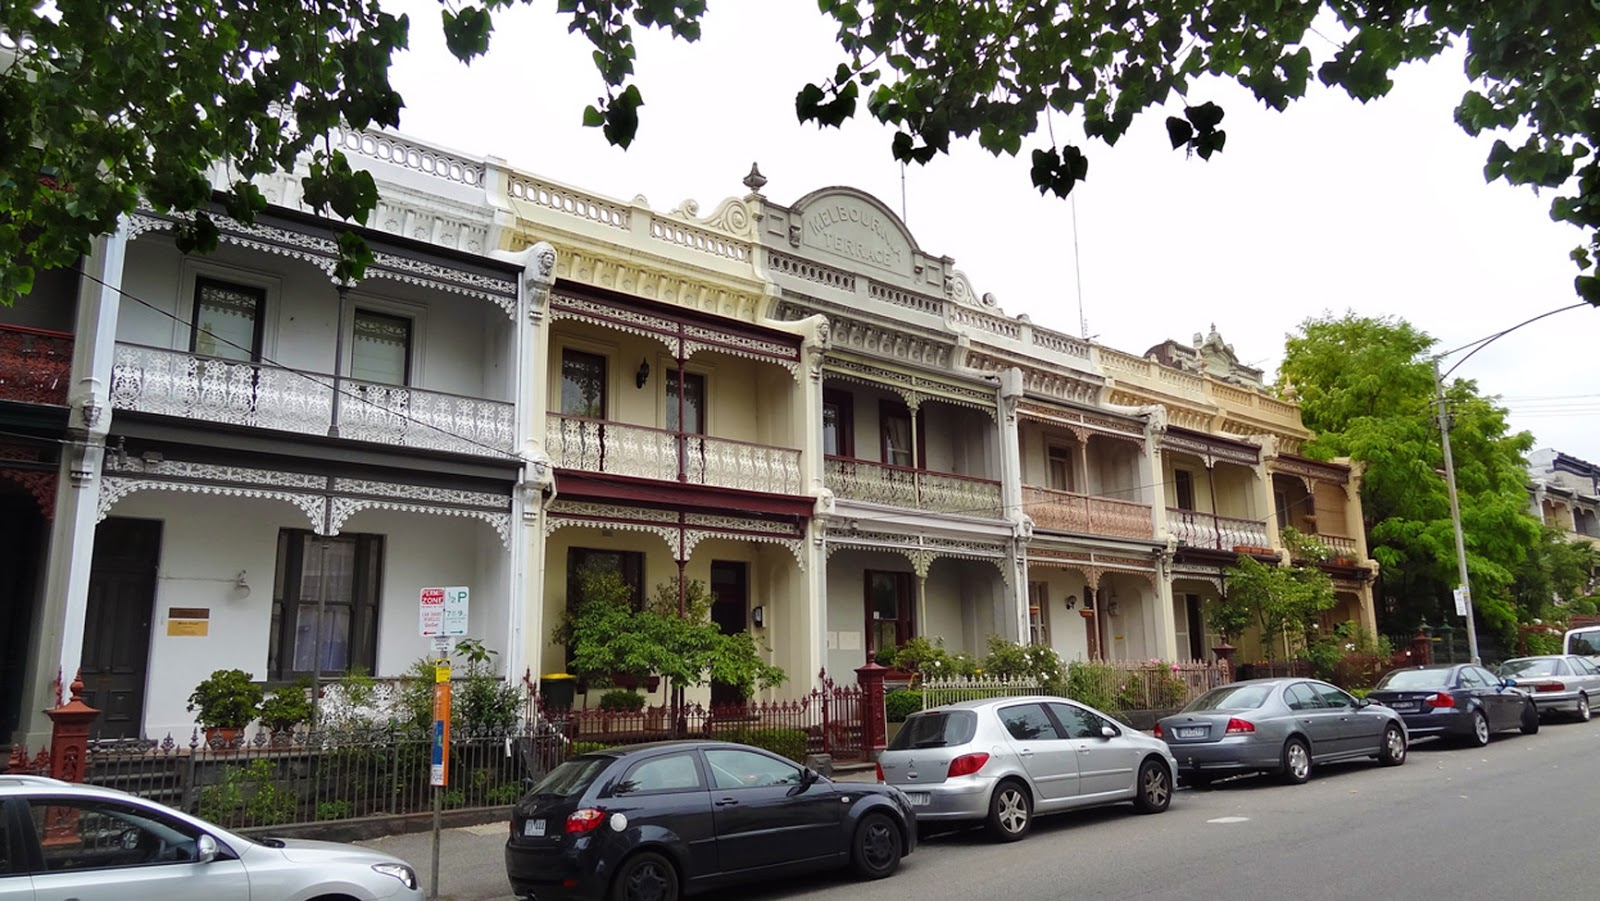 Melbourne fresh daily melbourne 39 s grand past for 18 carlton house terrace in st james